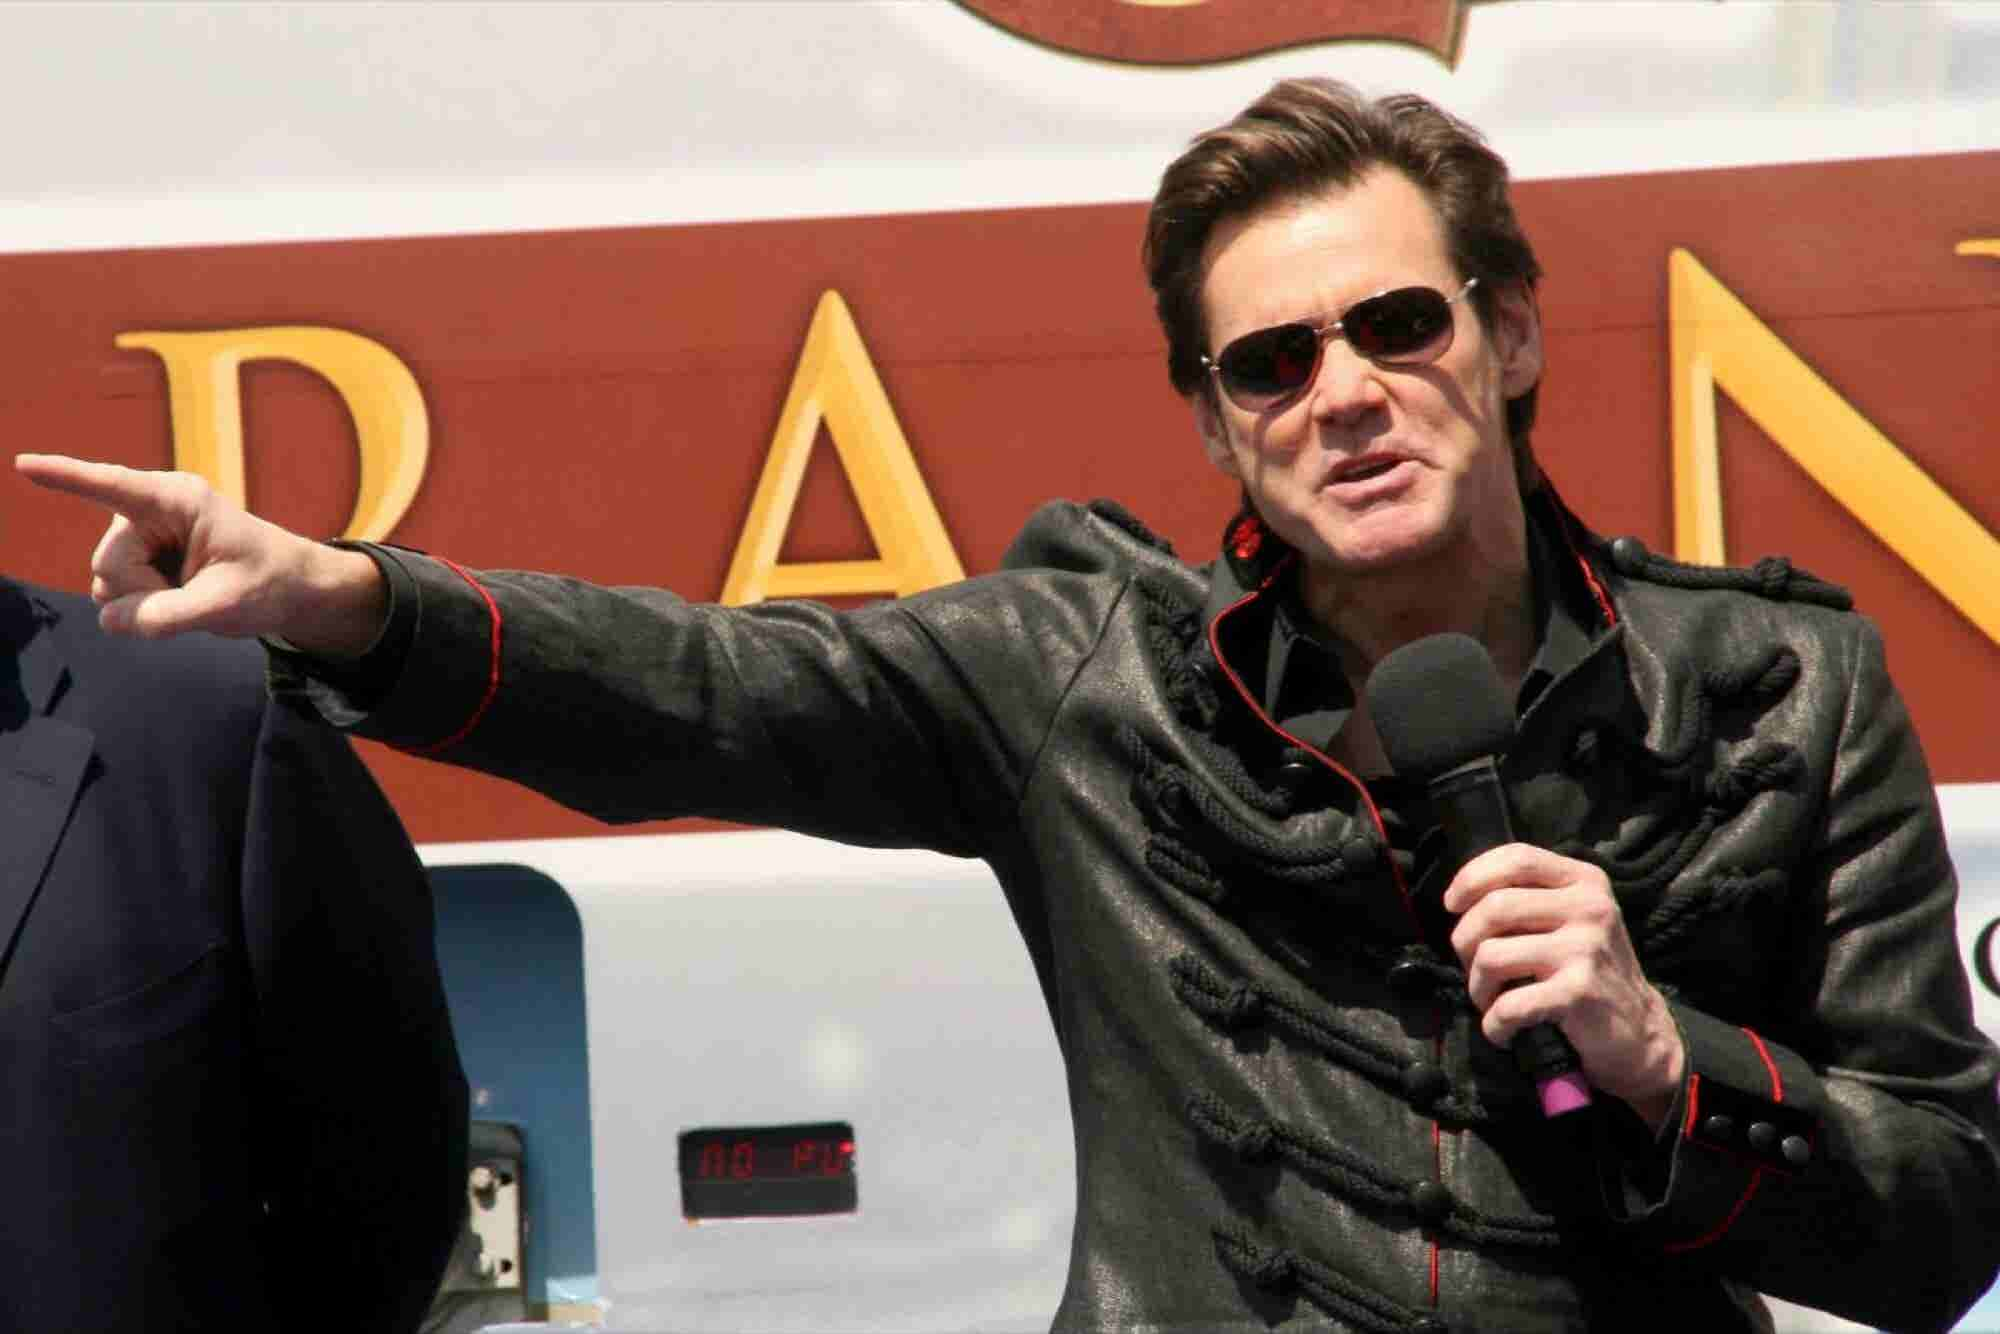 El actor Jim Carrey planea boicot en contra de Facebook